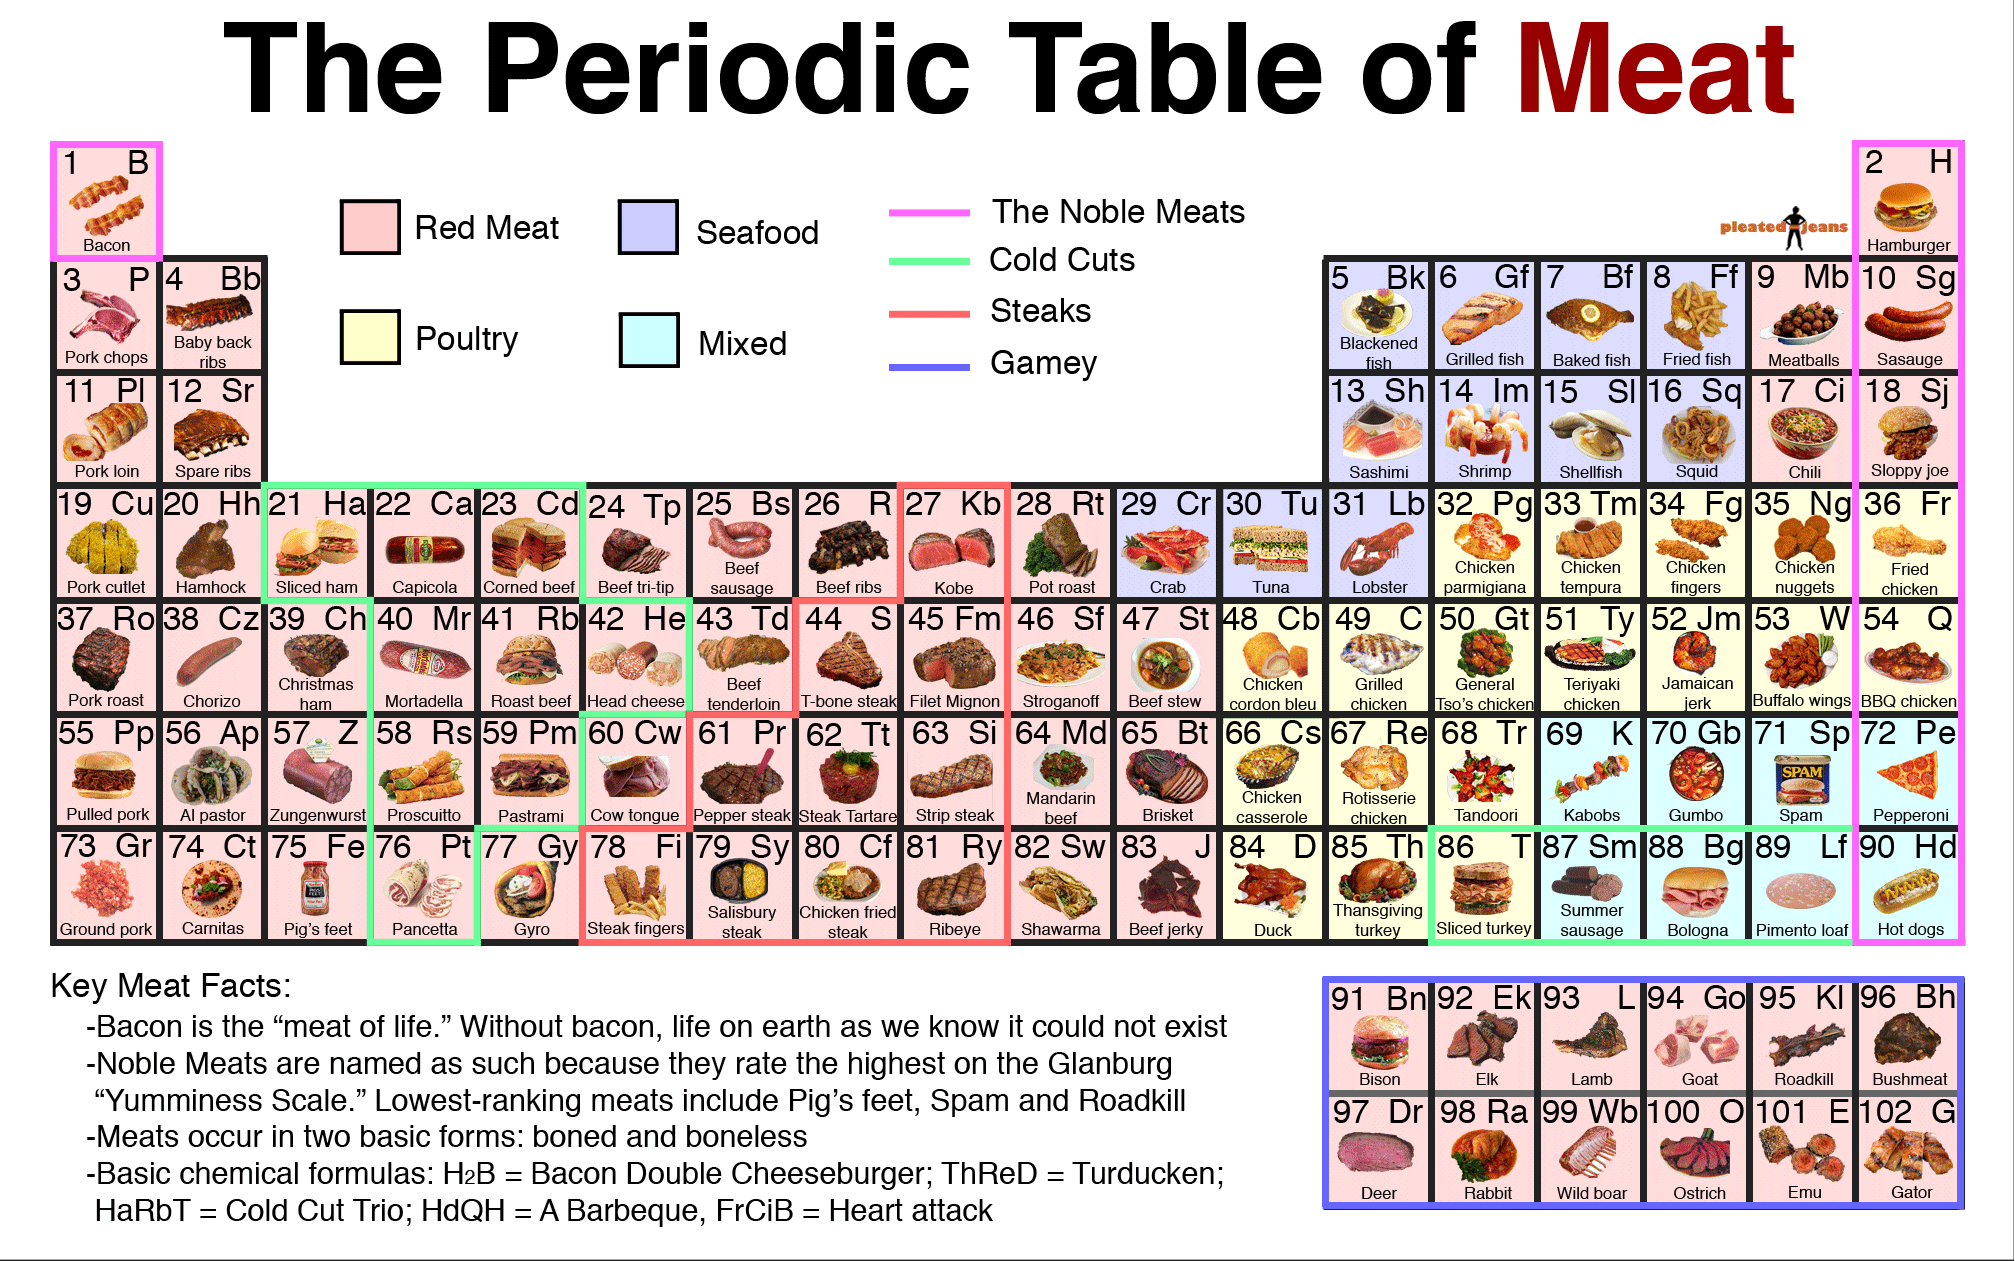 The periodic table of meat ar15 archive ideas for the the periodic table of meat ar15 archive gamestrikefo Image collections